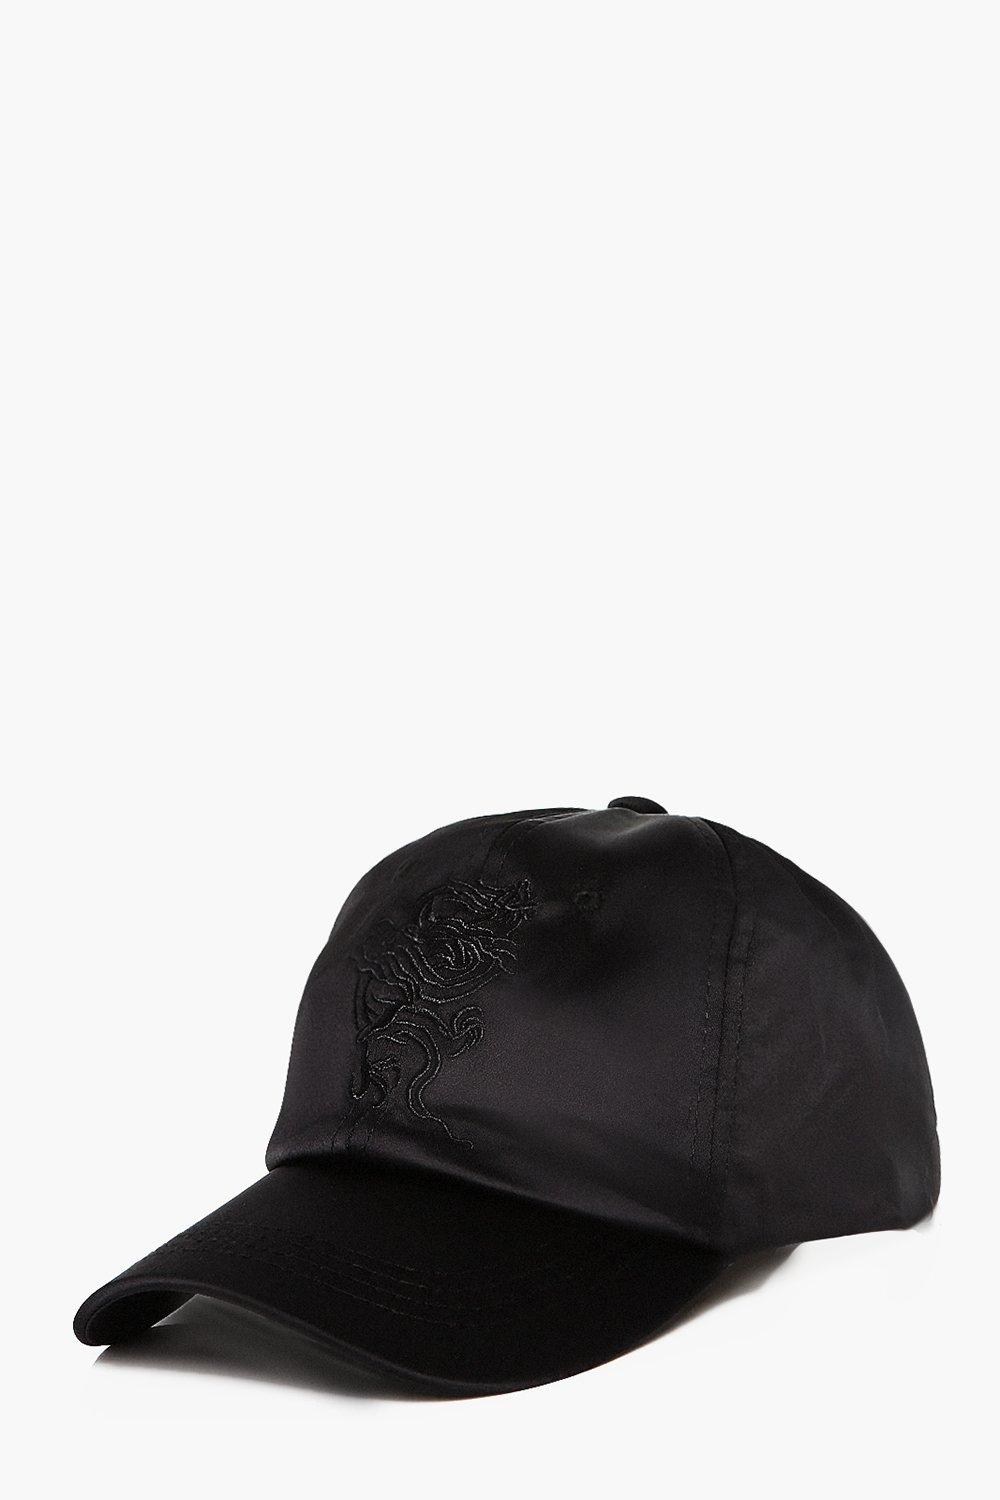 Embroidered Satin Cap - black - Dragon Embroidered